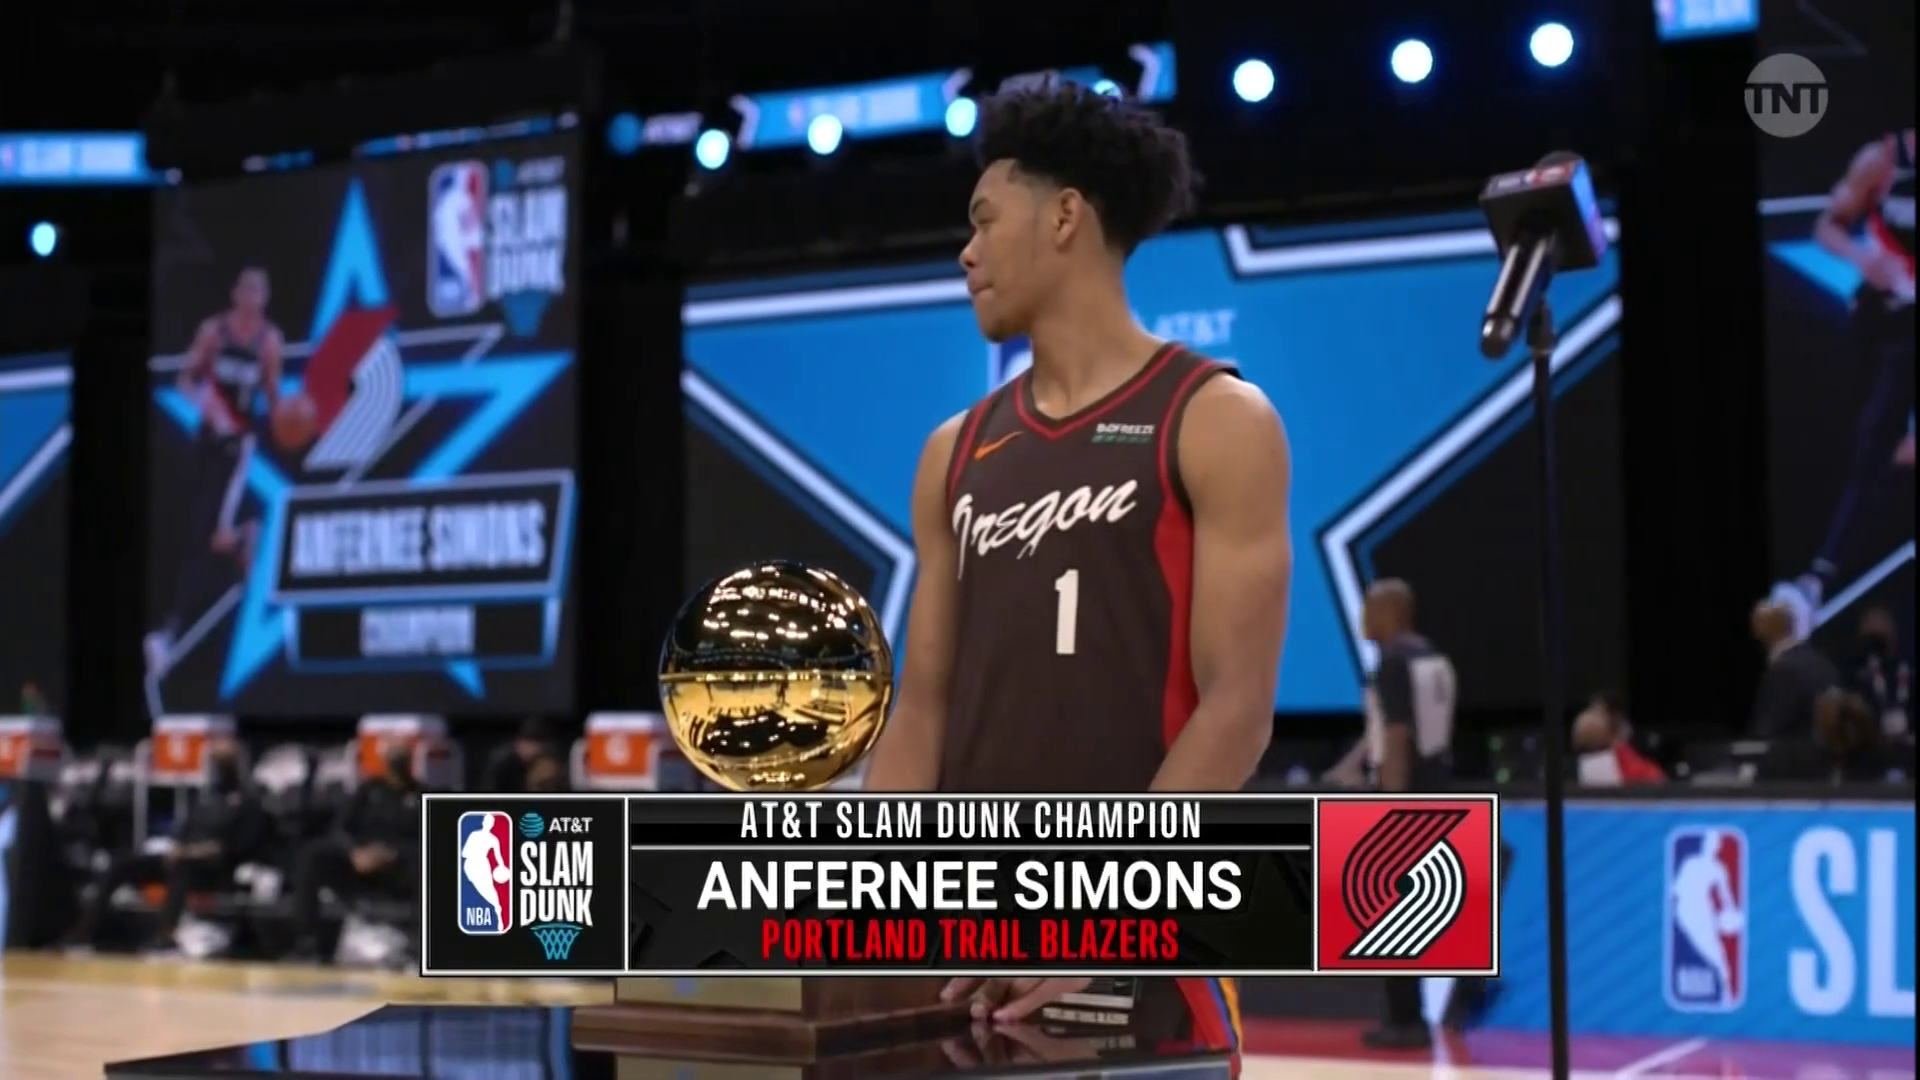 Anfernee Simons wins the 2021 AT&T Slam Dunk Contest